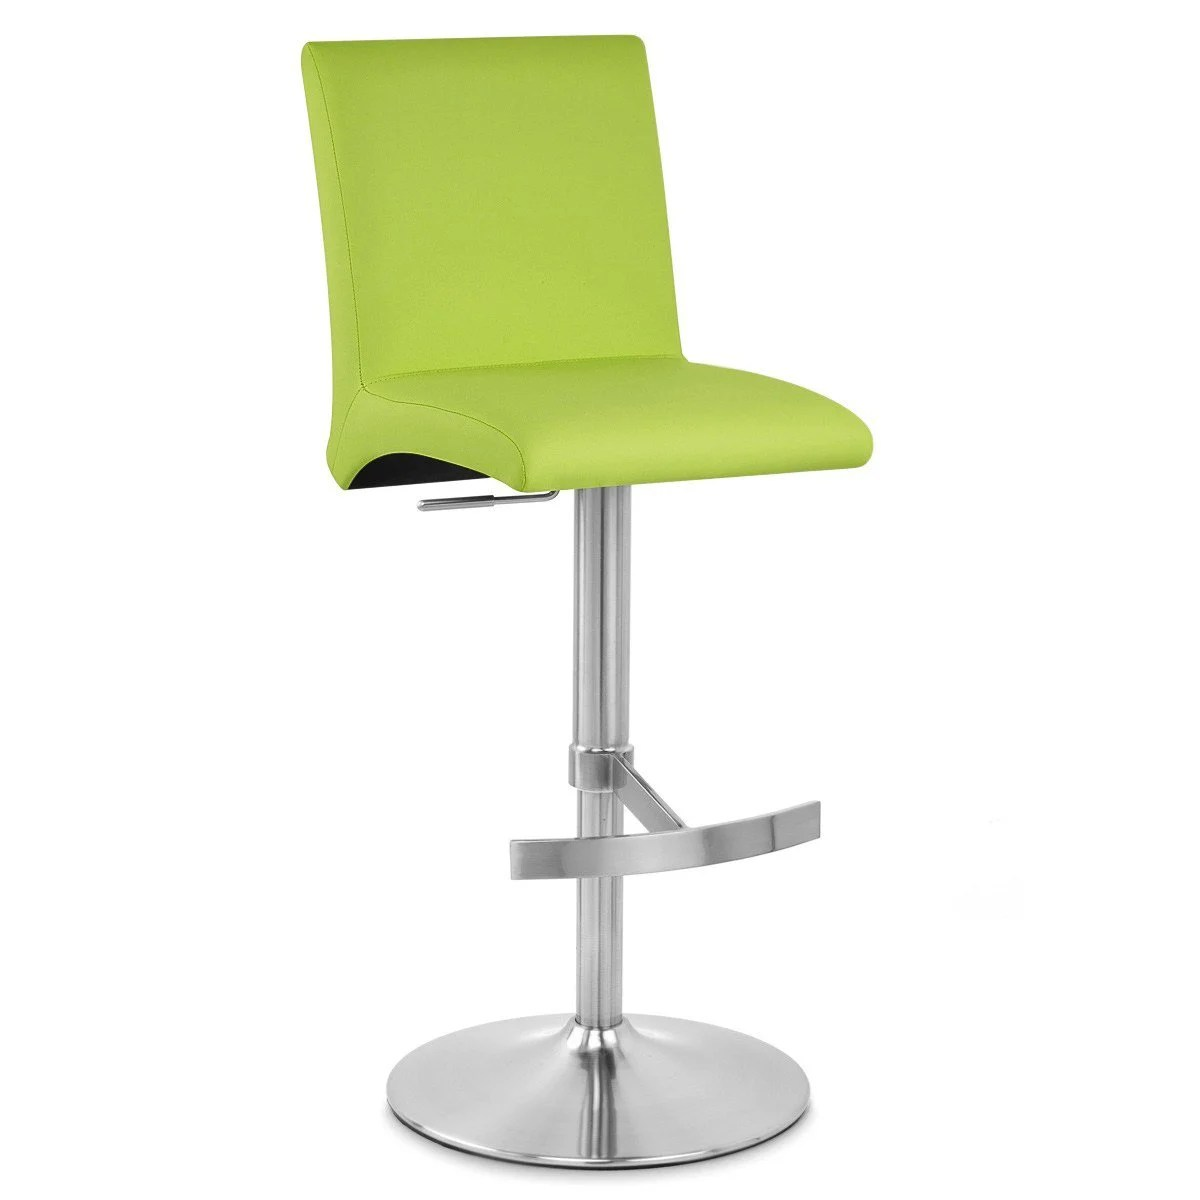 Tabourets Bar Verts Tabouret De Bar Design Simili Cuir Vert Deluxe High Back